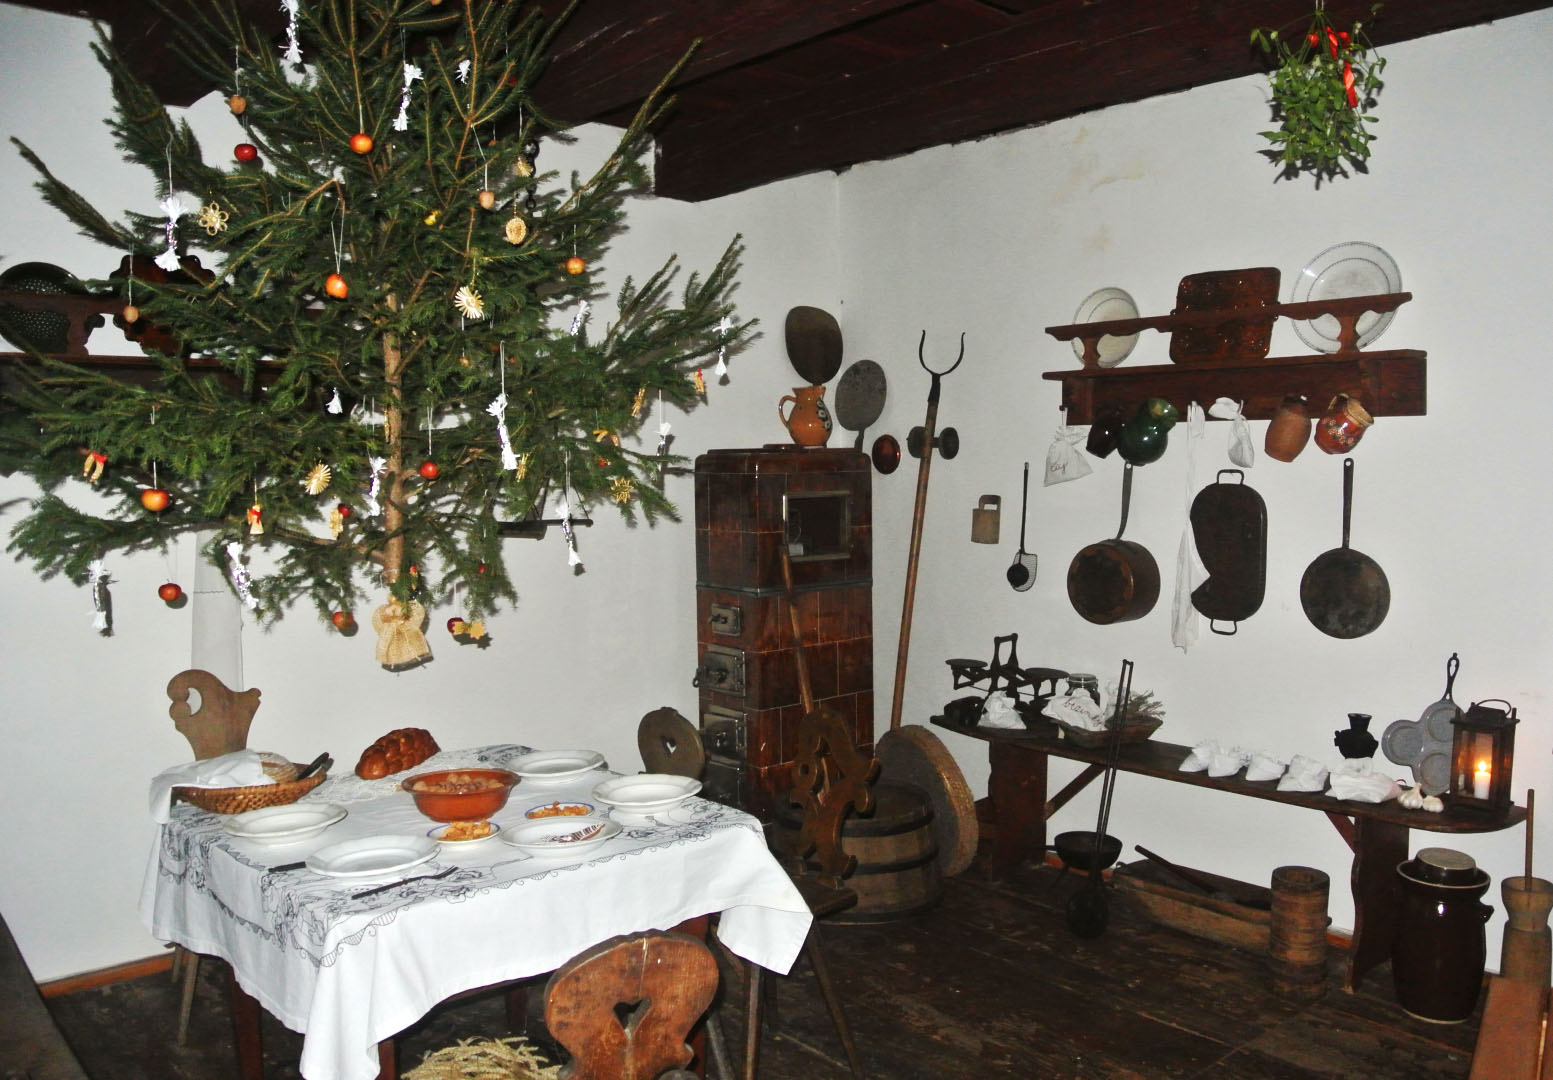 Recreation of Christmas in Homestead